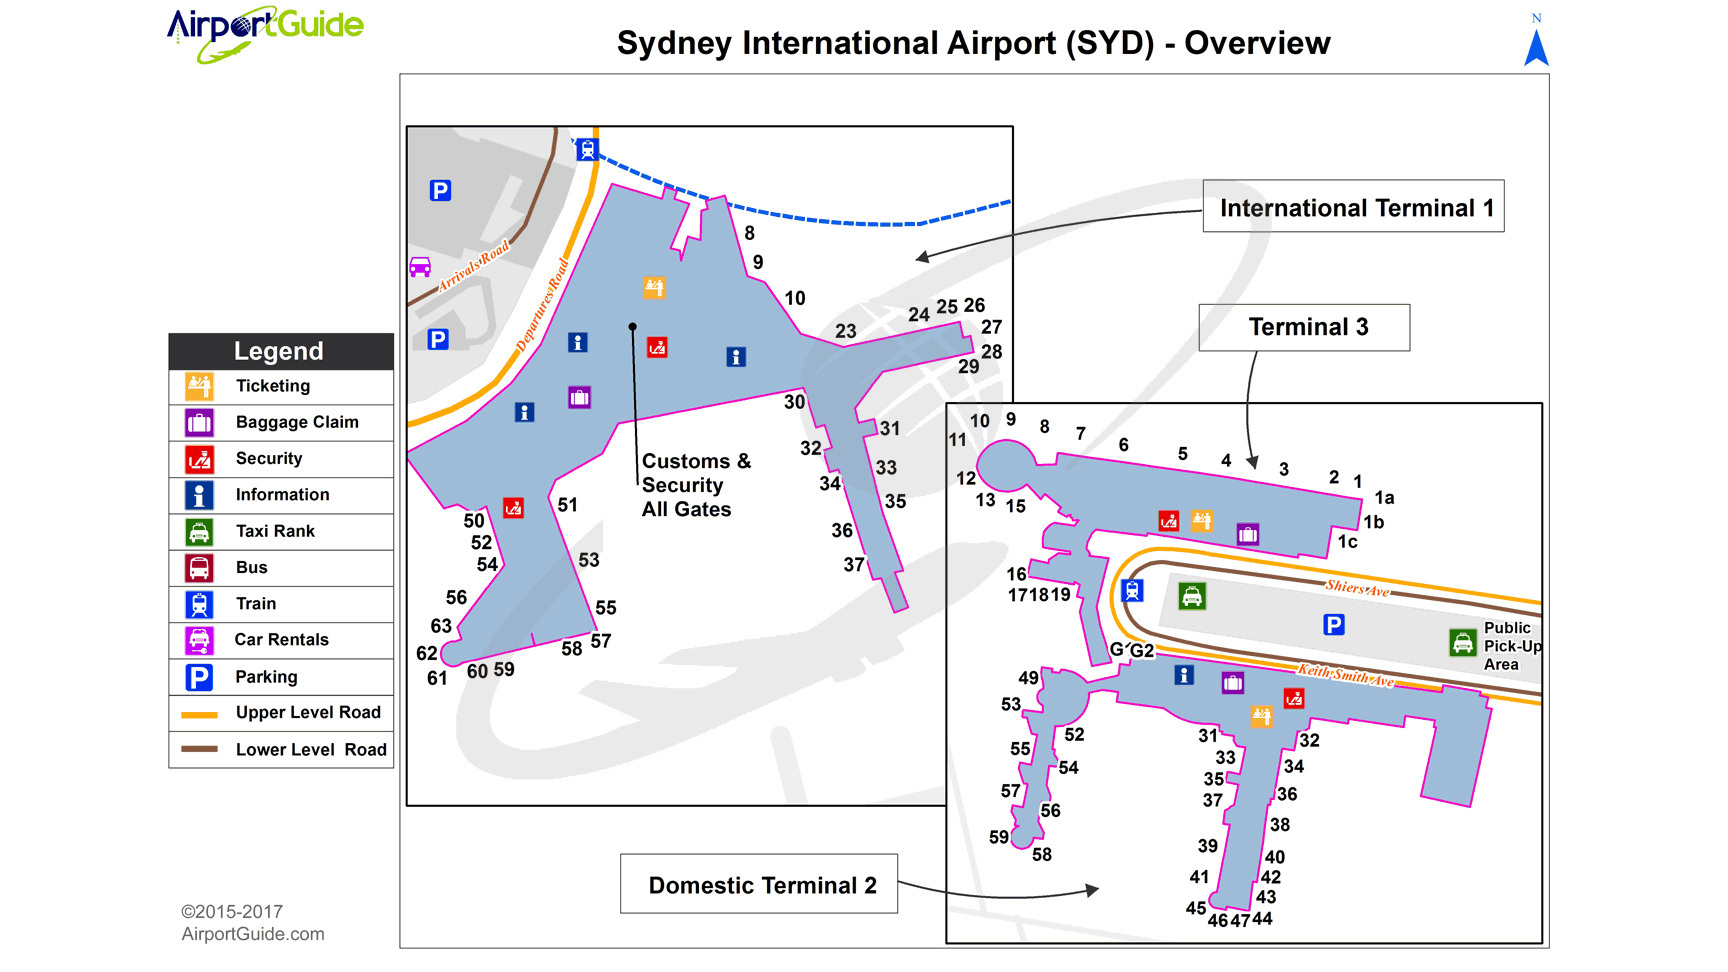 Sydney International Airport Overview